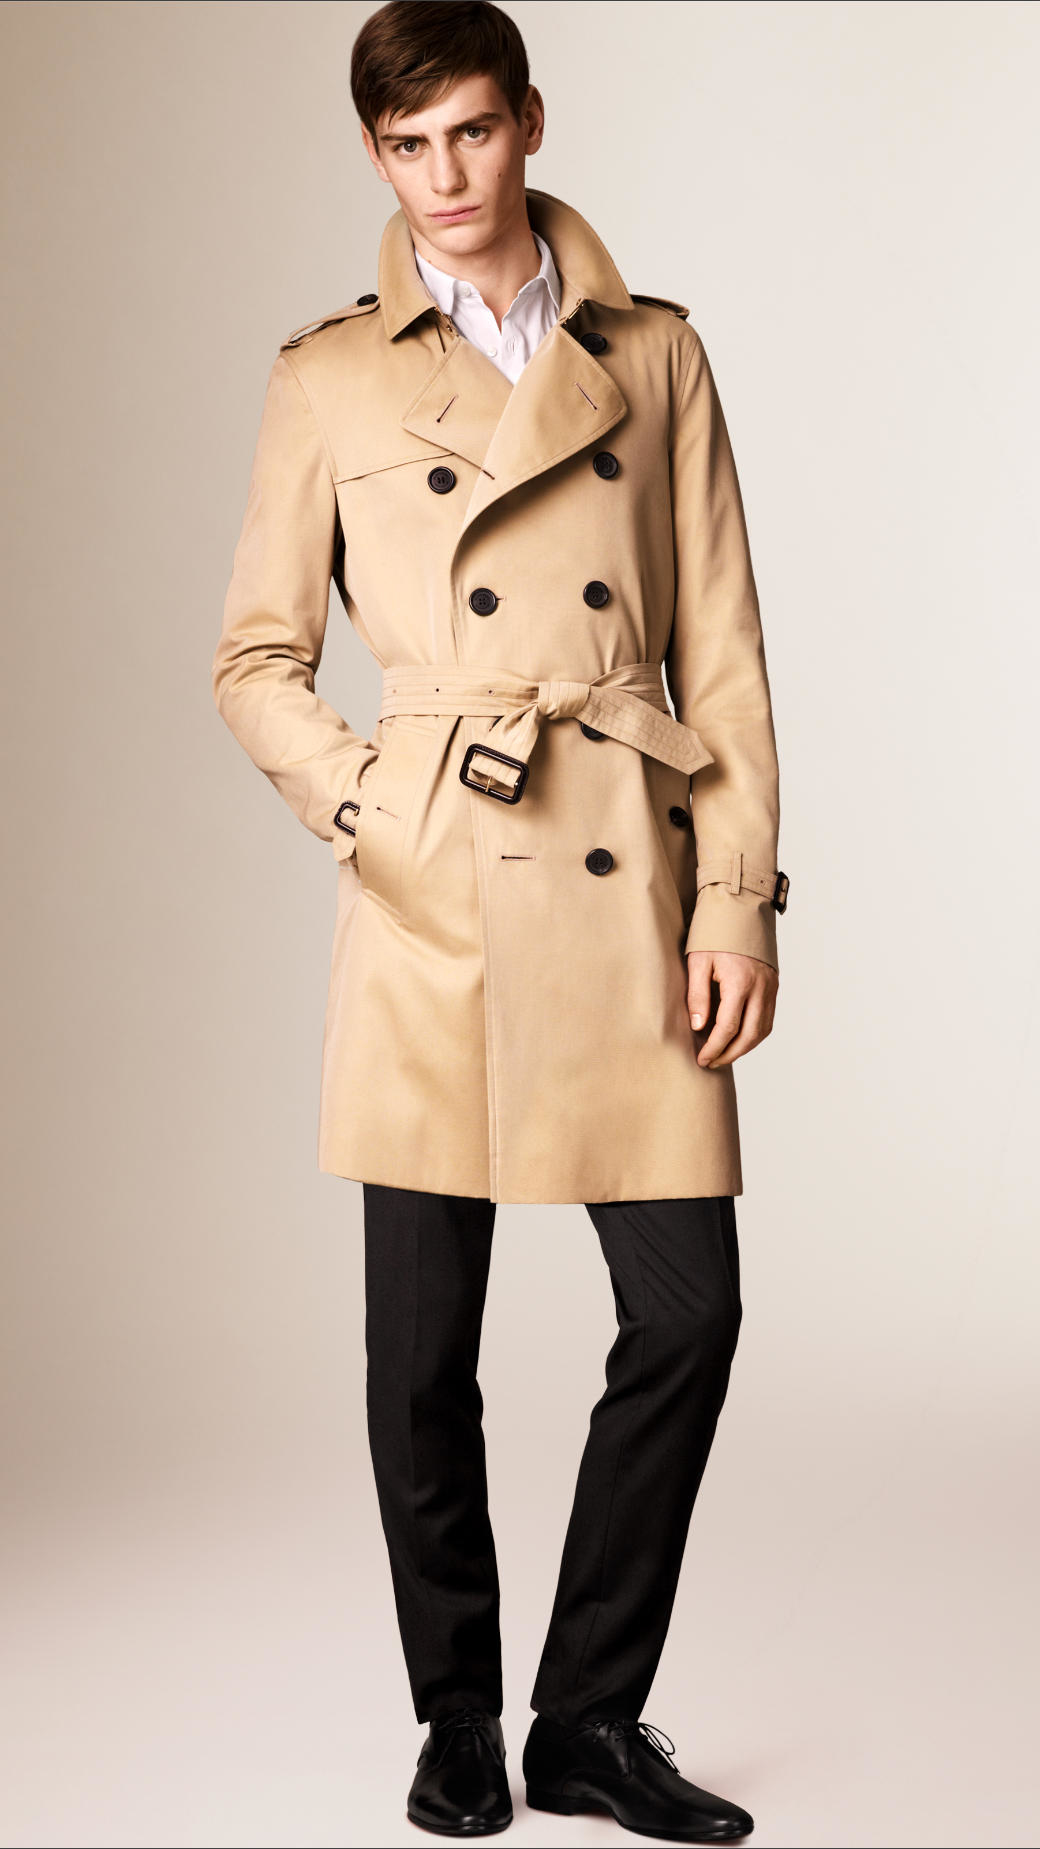 Our women's trench coats are an essential rainy day jacket, for spring showers or chilly fall weather! Shop our women's trench coat selection. Men's New Arrivals Everyday free standard shipping on orders $50+ placed online at hereaupy06.gq for U.S. or Canada.